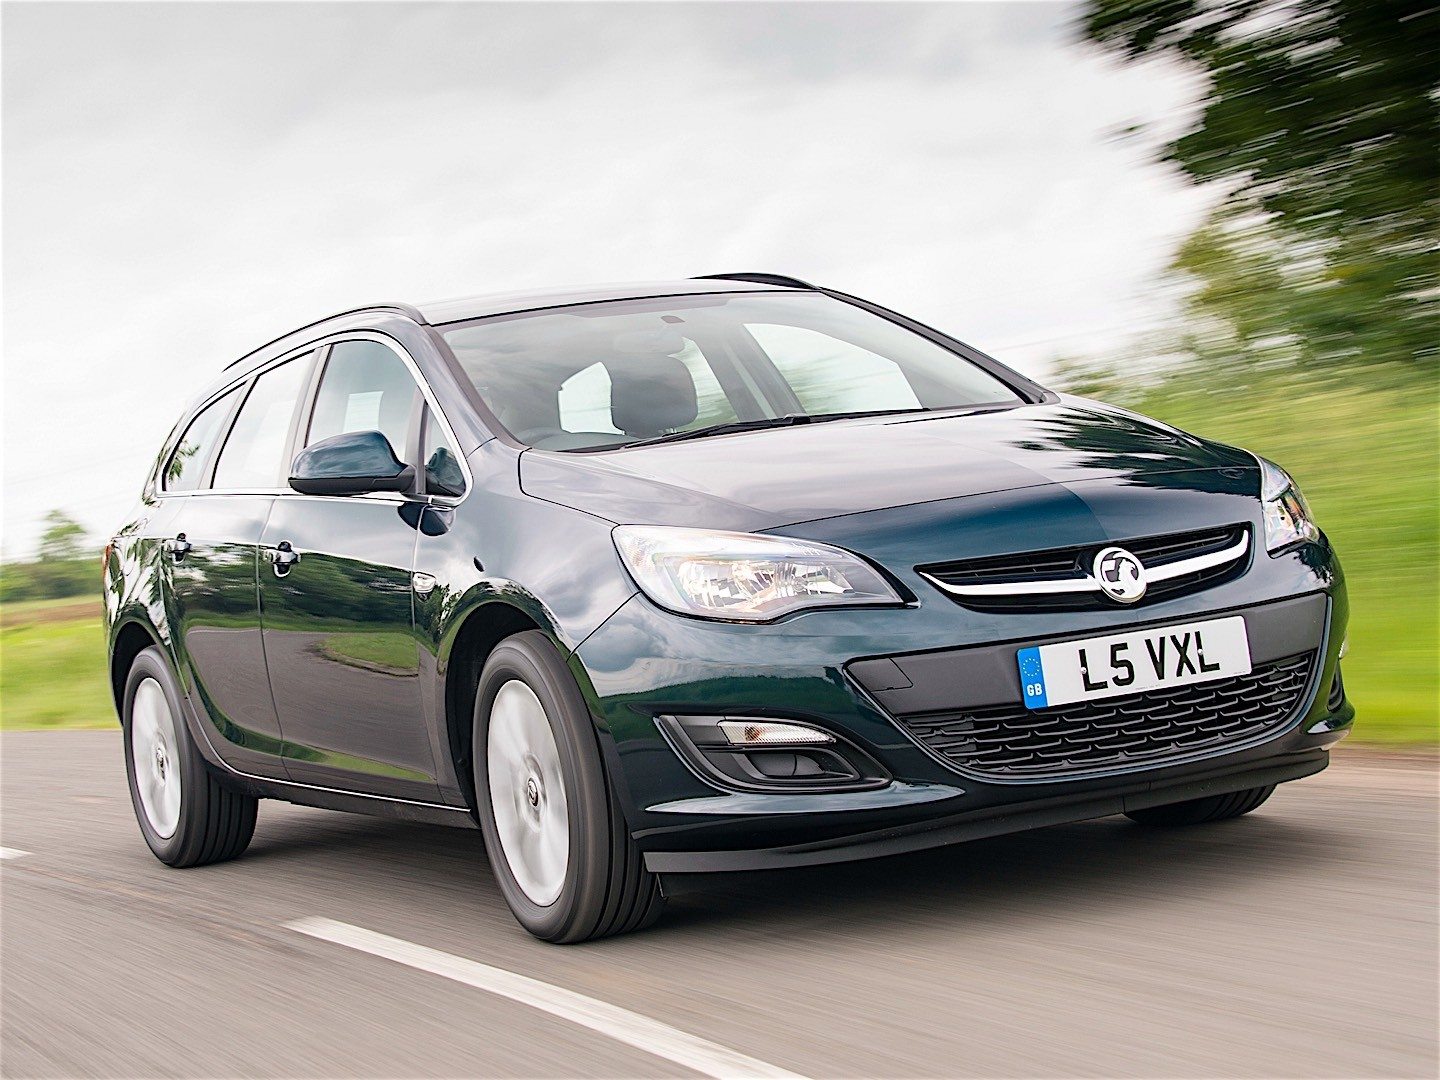 Vauxhall Astra Sports Tourer Vauxhall Astra Sports Tourer Specs 2012 2013 2014